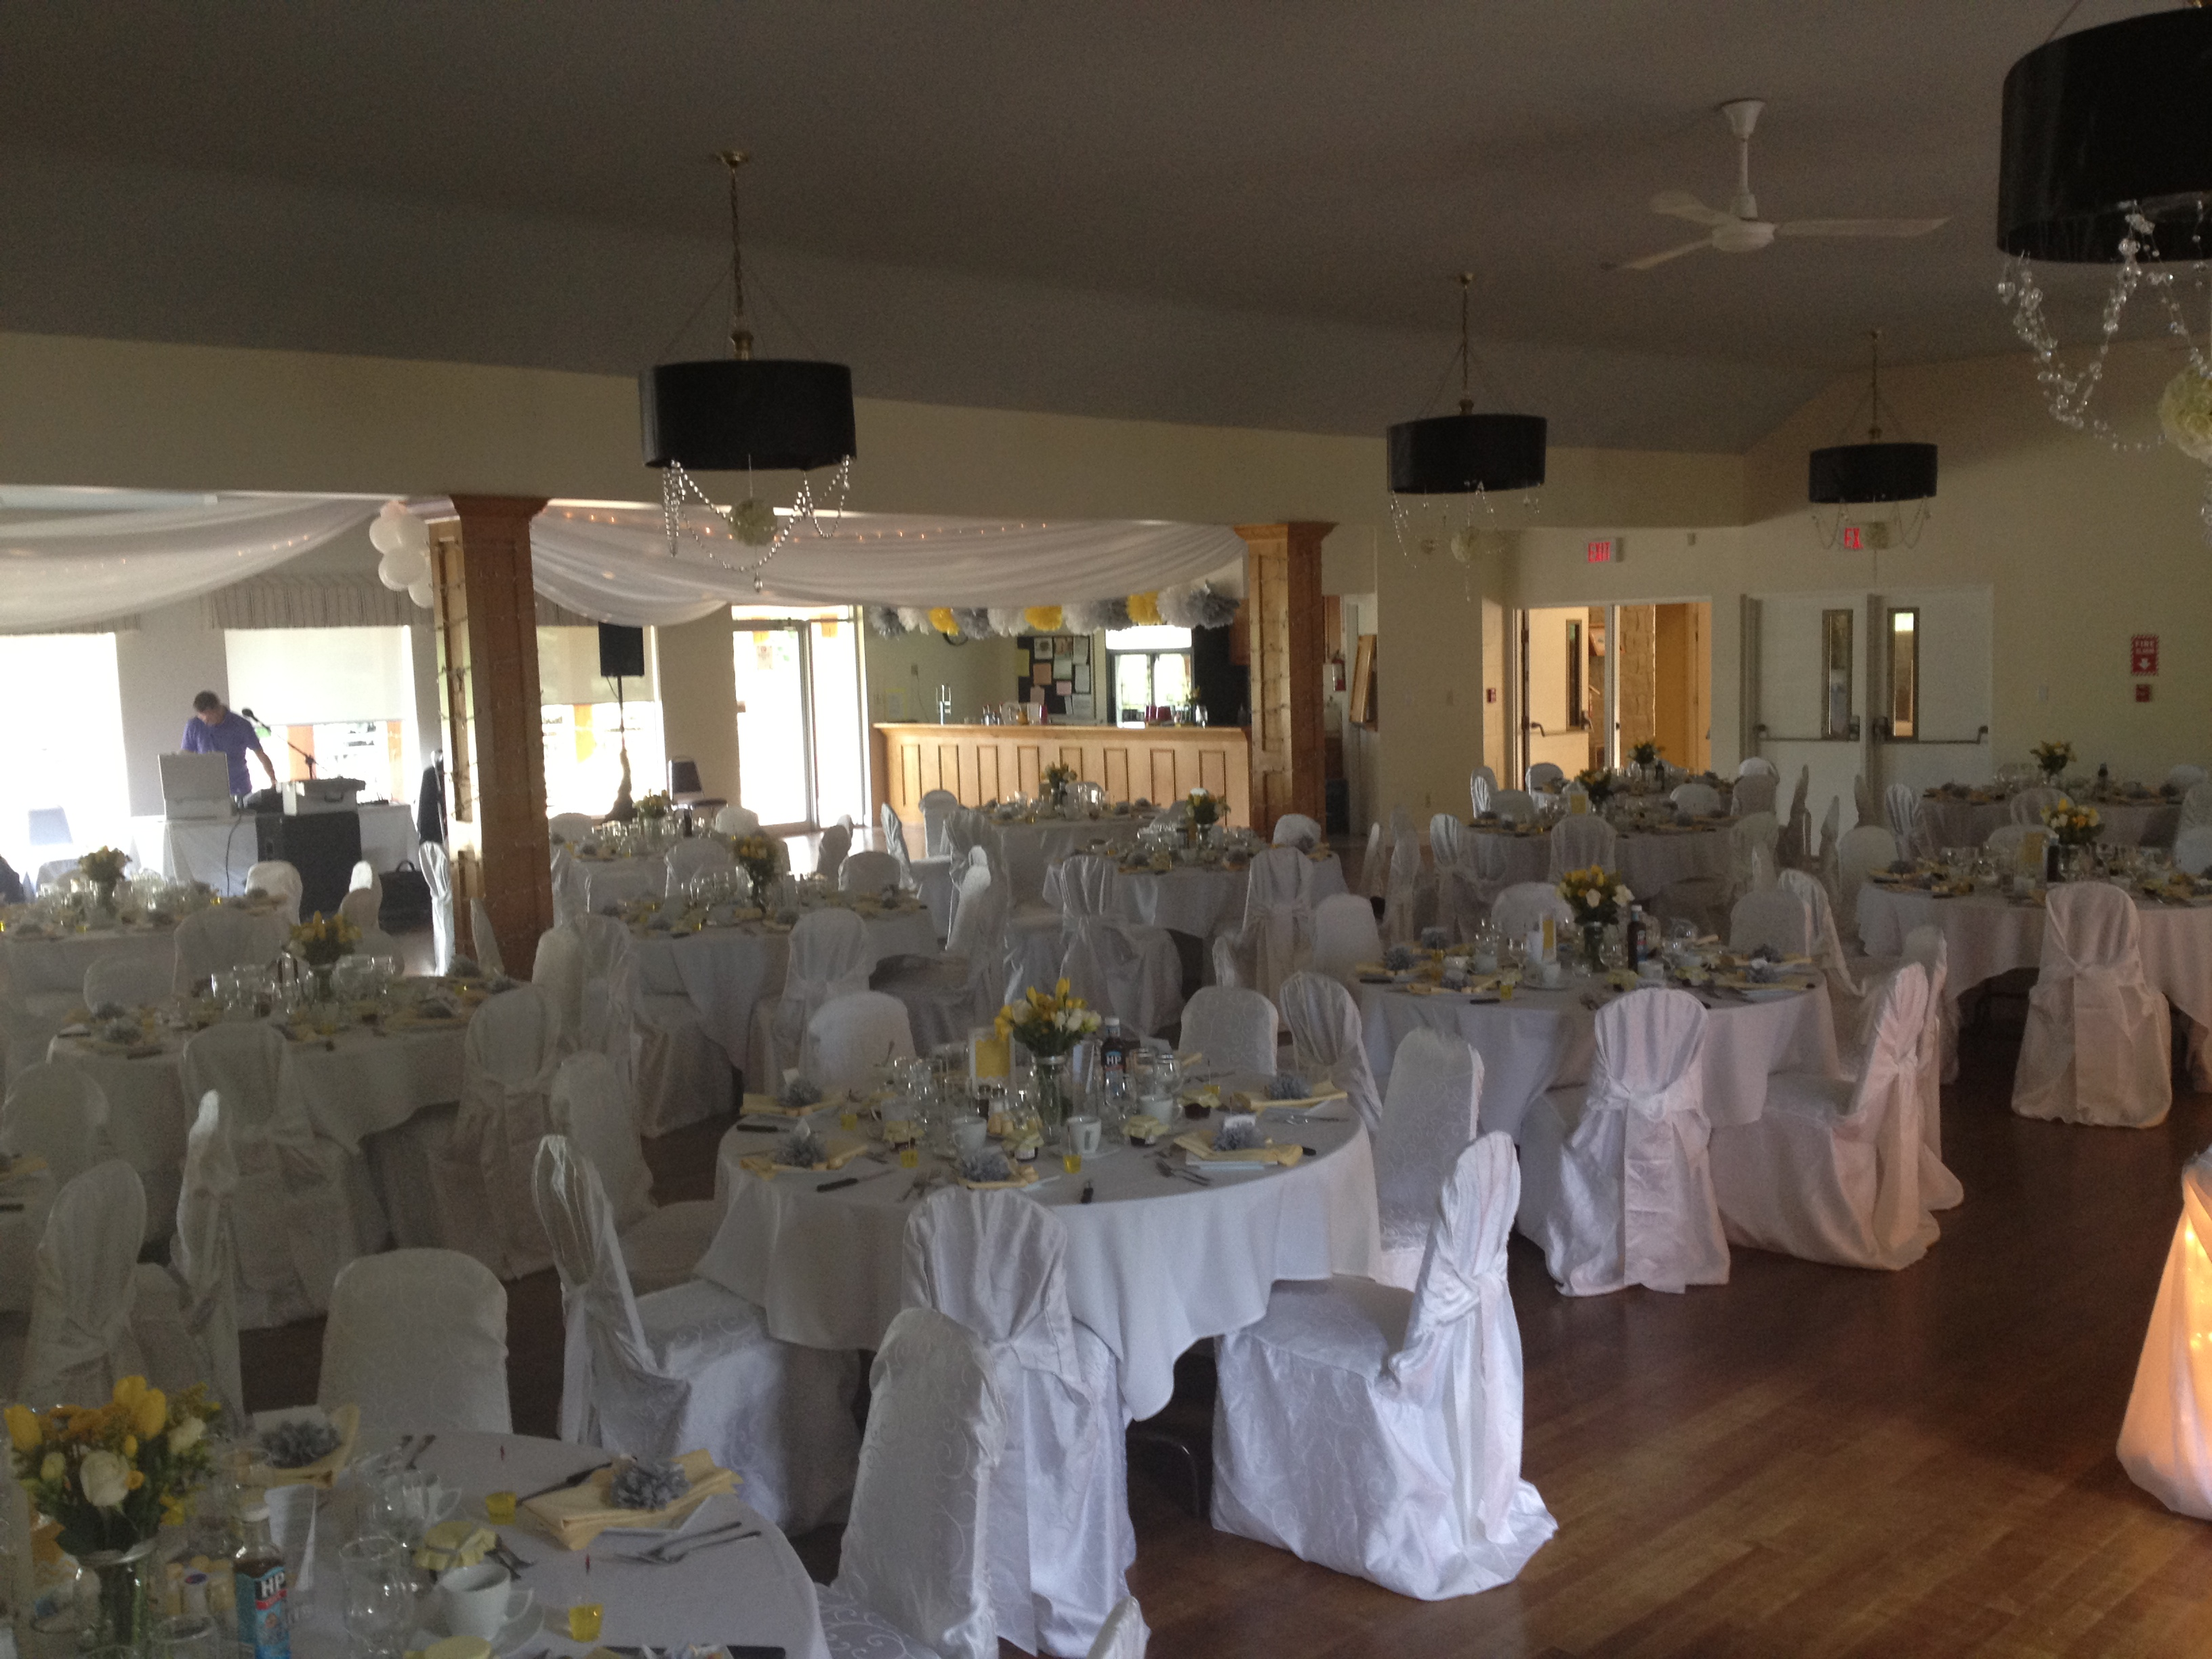 Banquet Room with tables and chairs set up